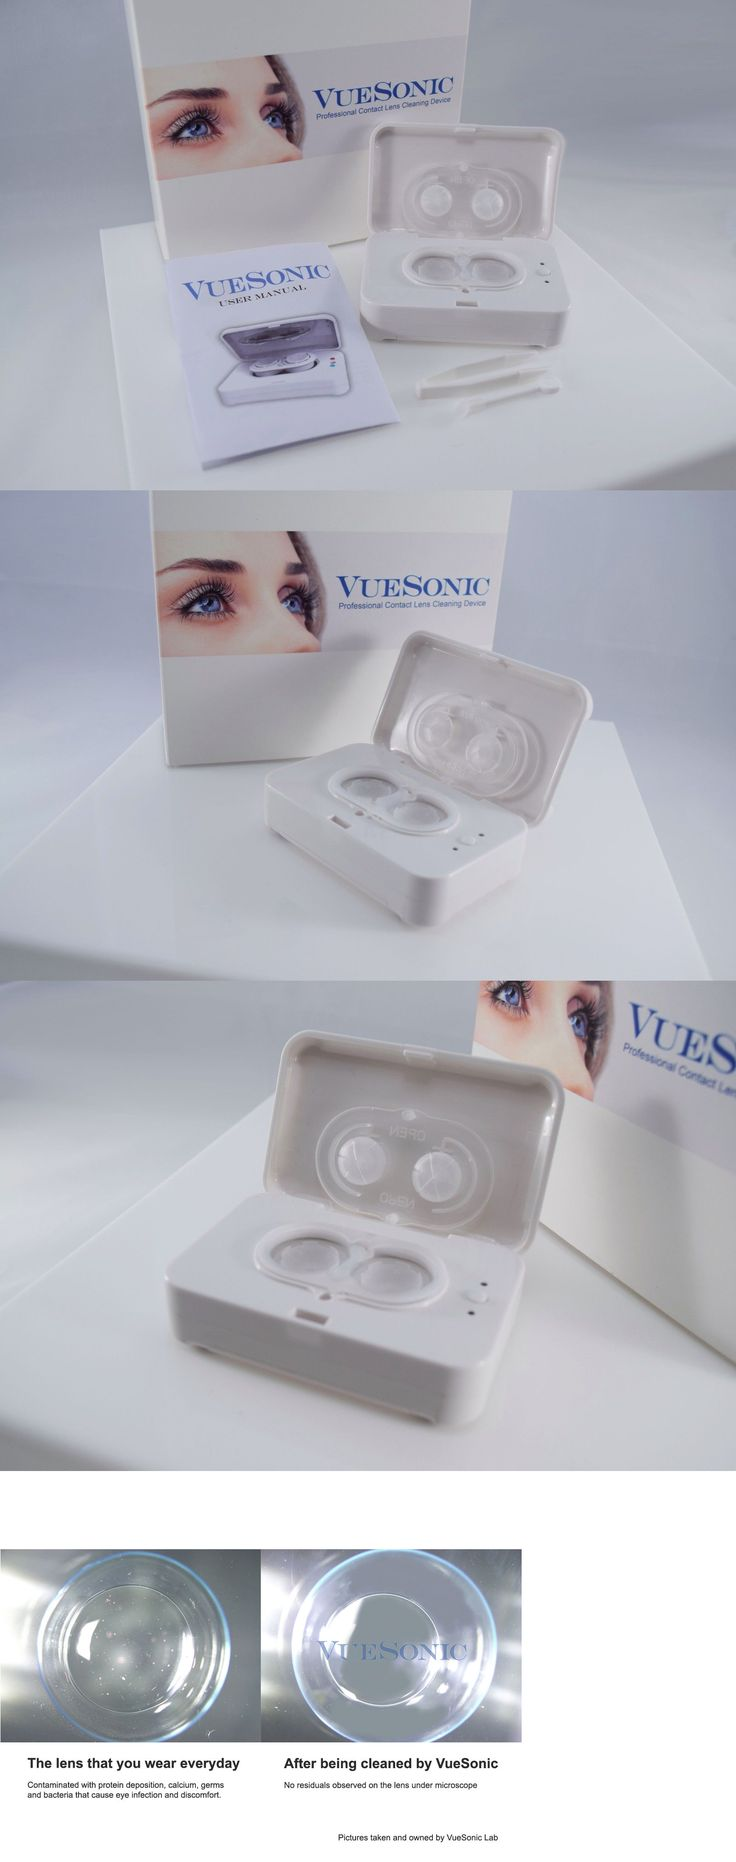 Other Vision Care: Vuesonic Portable Contact Lens Cleaning Device, Ultrasonic 3D Lens Cleaner, Case -> BUY IT NOW ONLY: $59.9 on eBay!